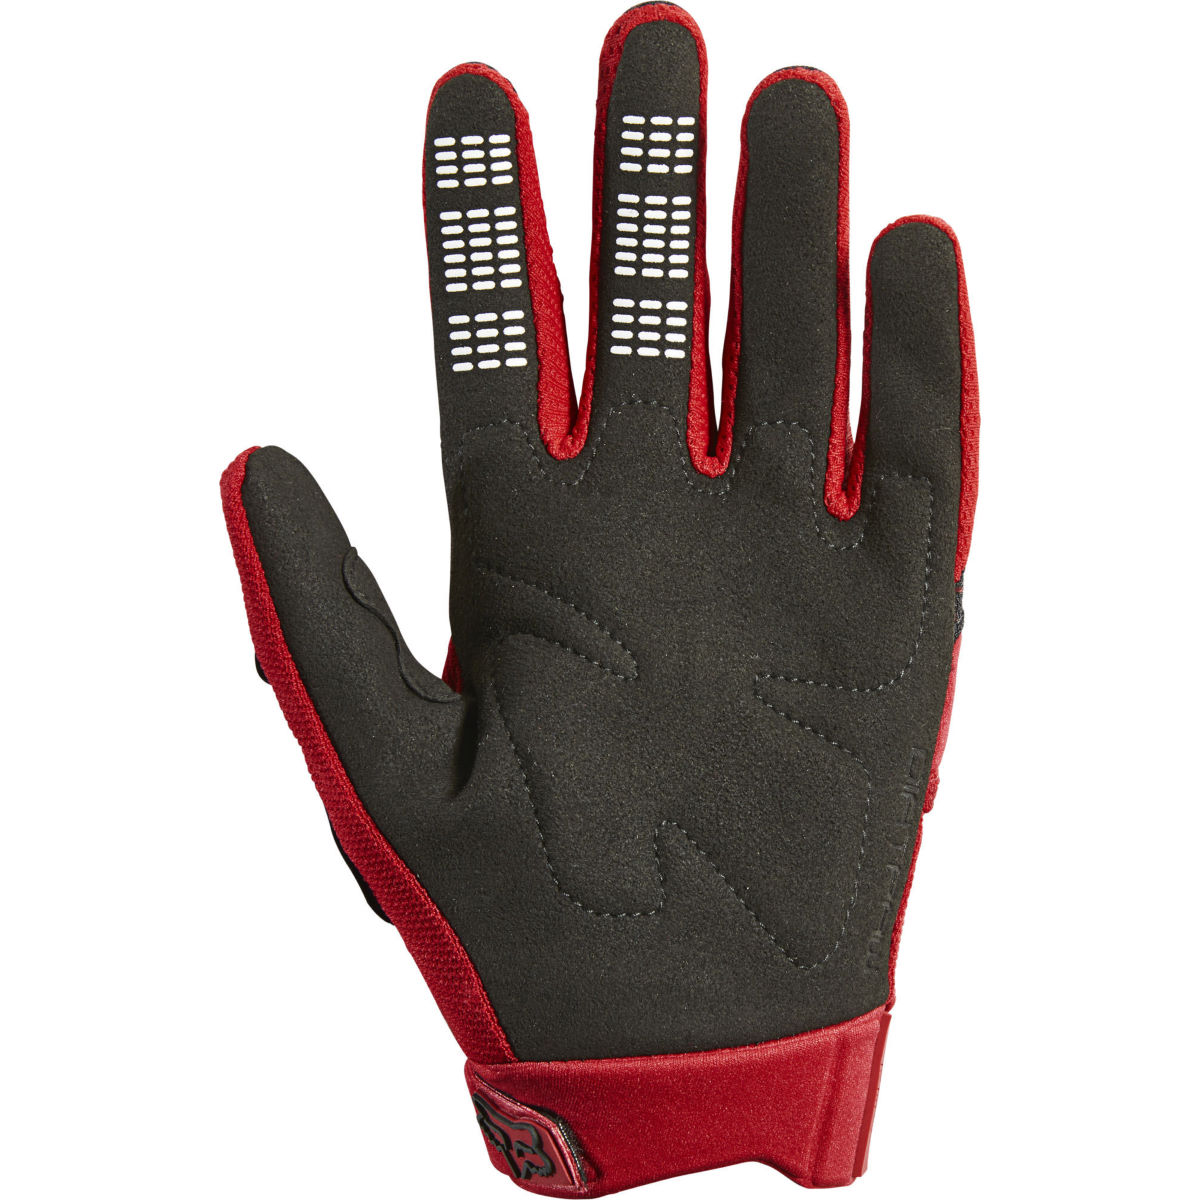 Fox Racing Youth Dirtpaw Race Cycling Gloves - Y-l Flame Red  Gloves